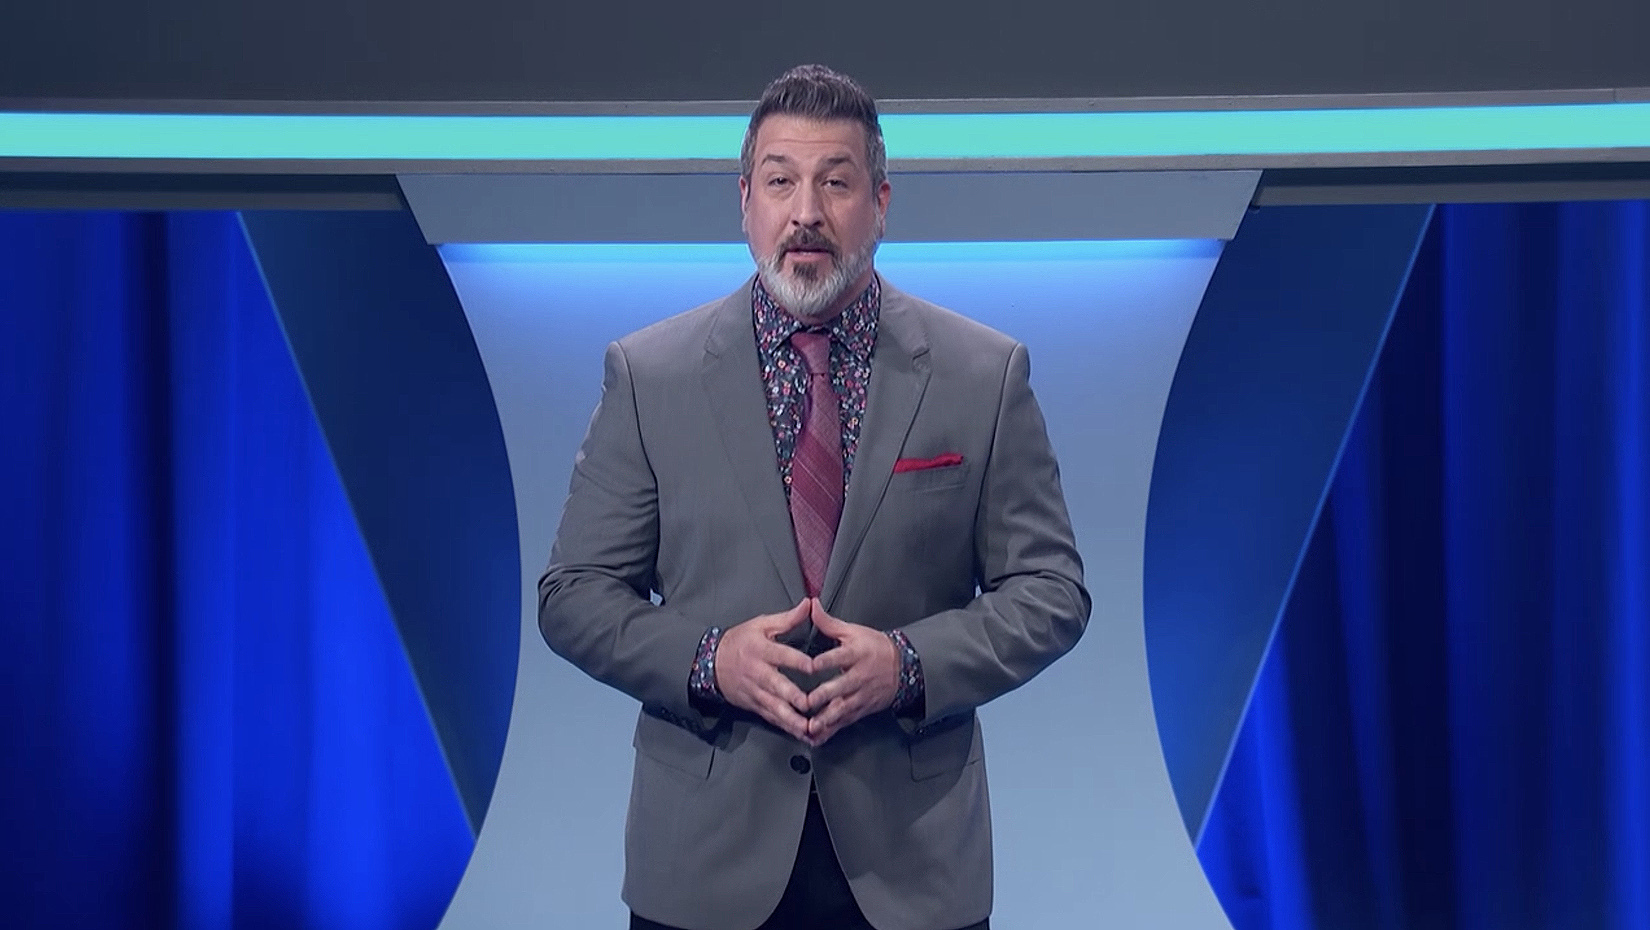 NCS_Common-Knowledge-Game-Show-Network-Joey-Fatone_0023